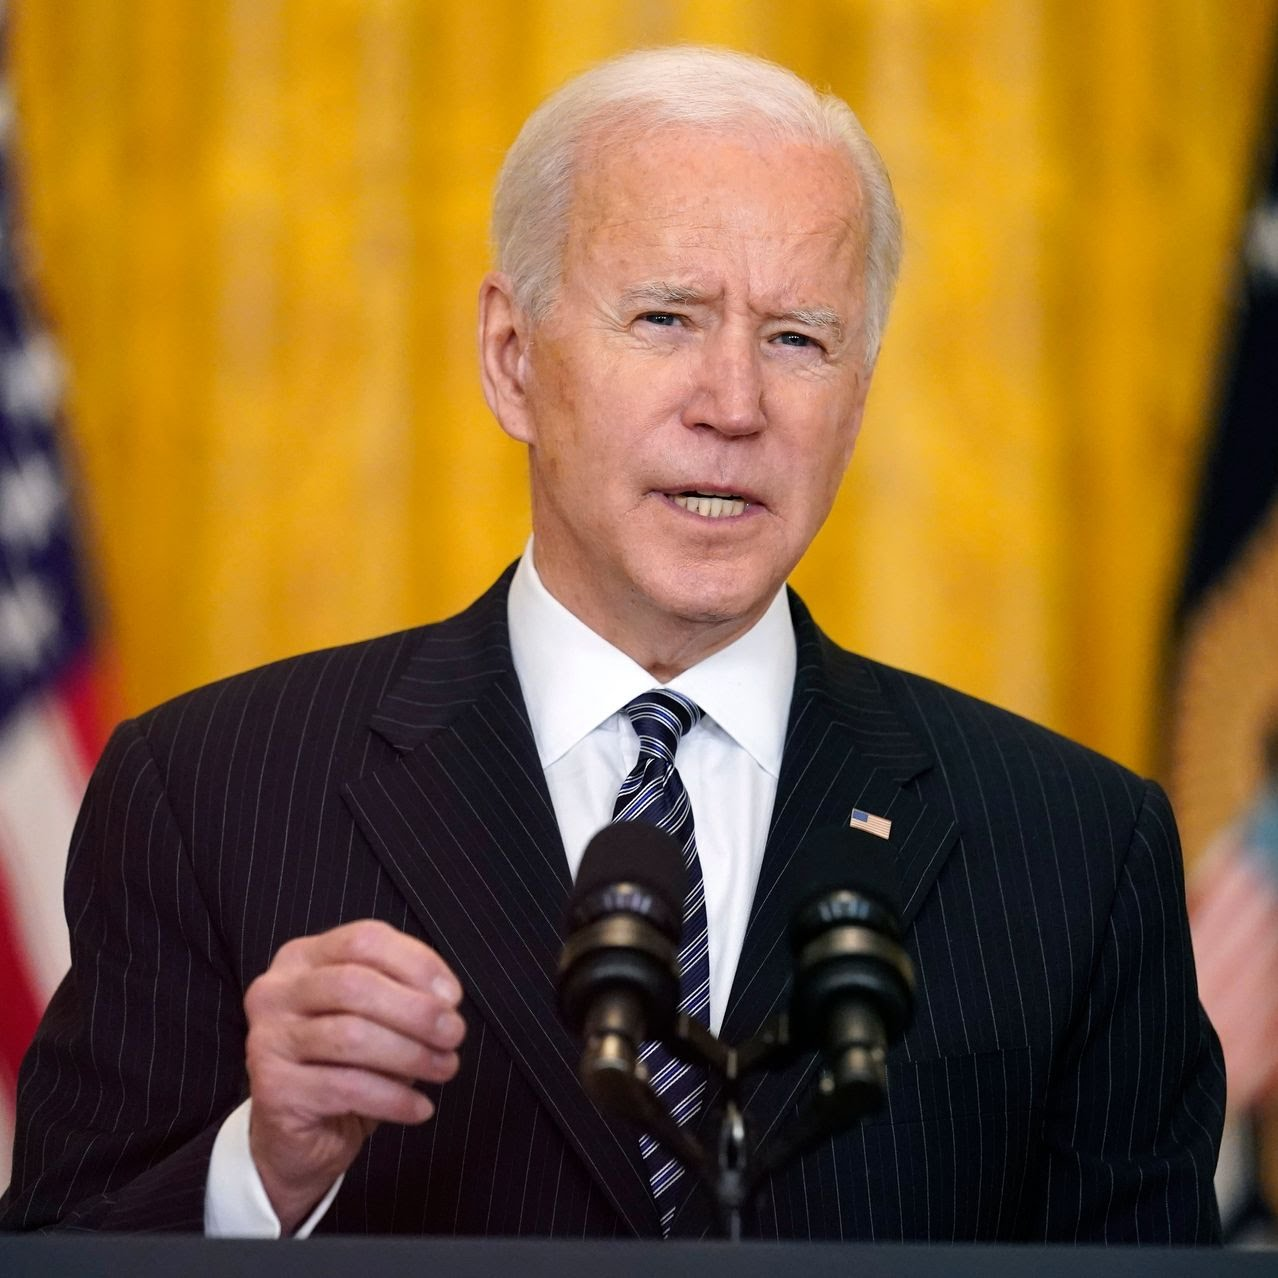 President Biden in the White House on March 18.